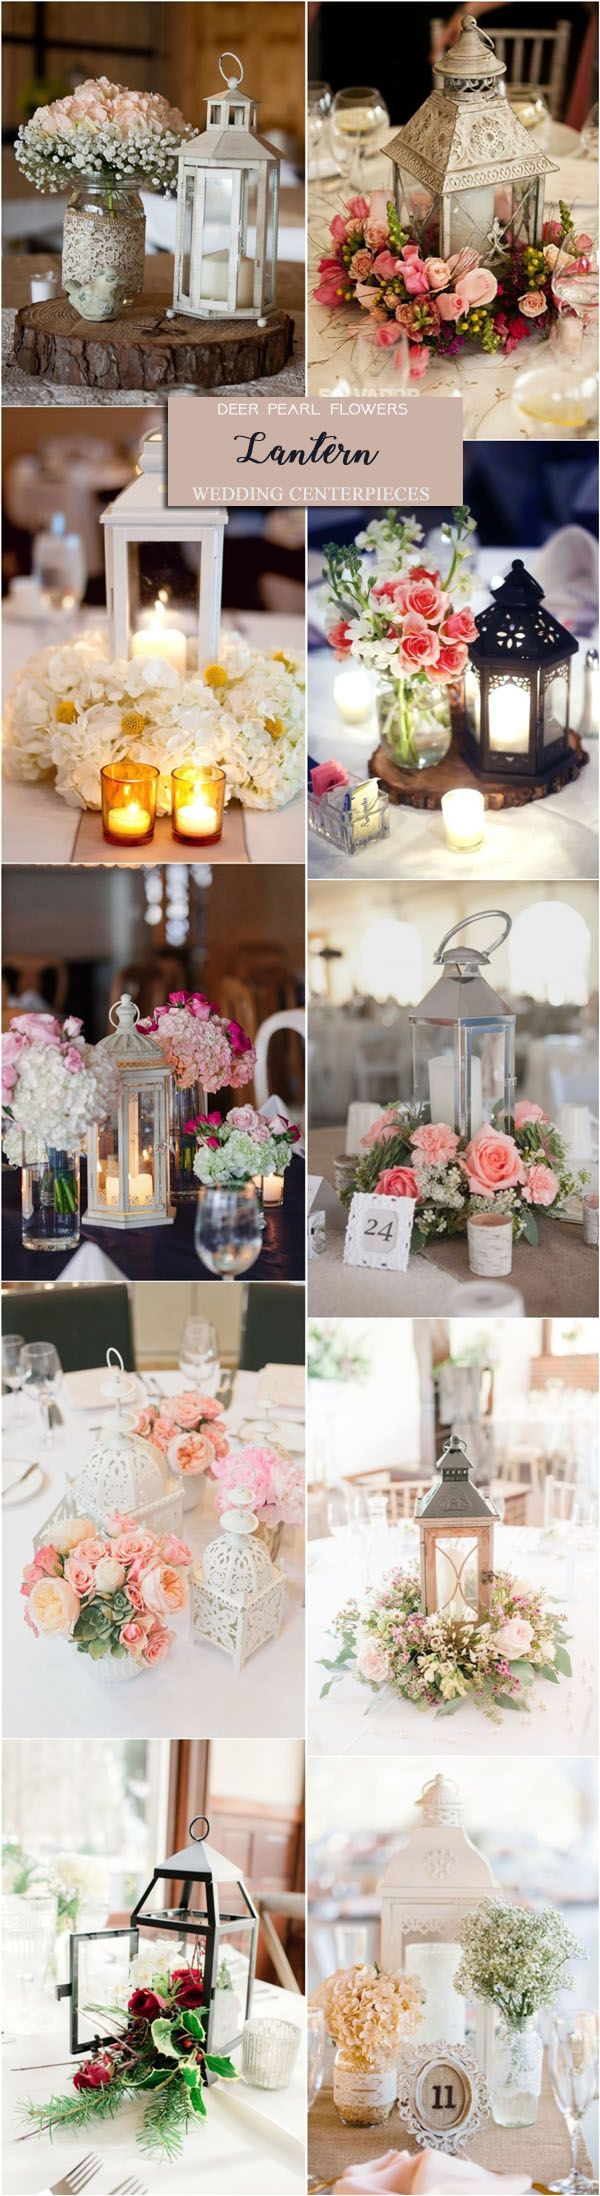 Rustic vintage lantern wedding centerpiece decor ideas / http://www.deerpearlflowers.com/wedding-centerpiece-ideas/2/